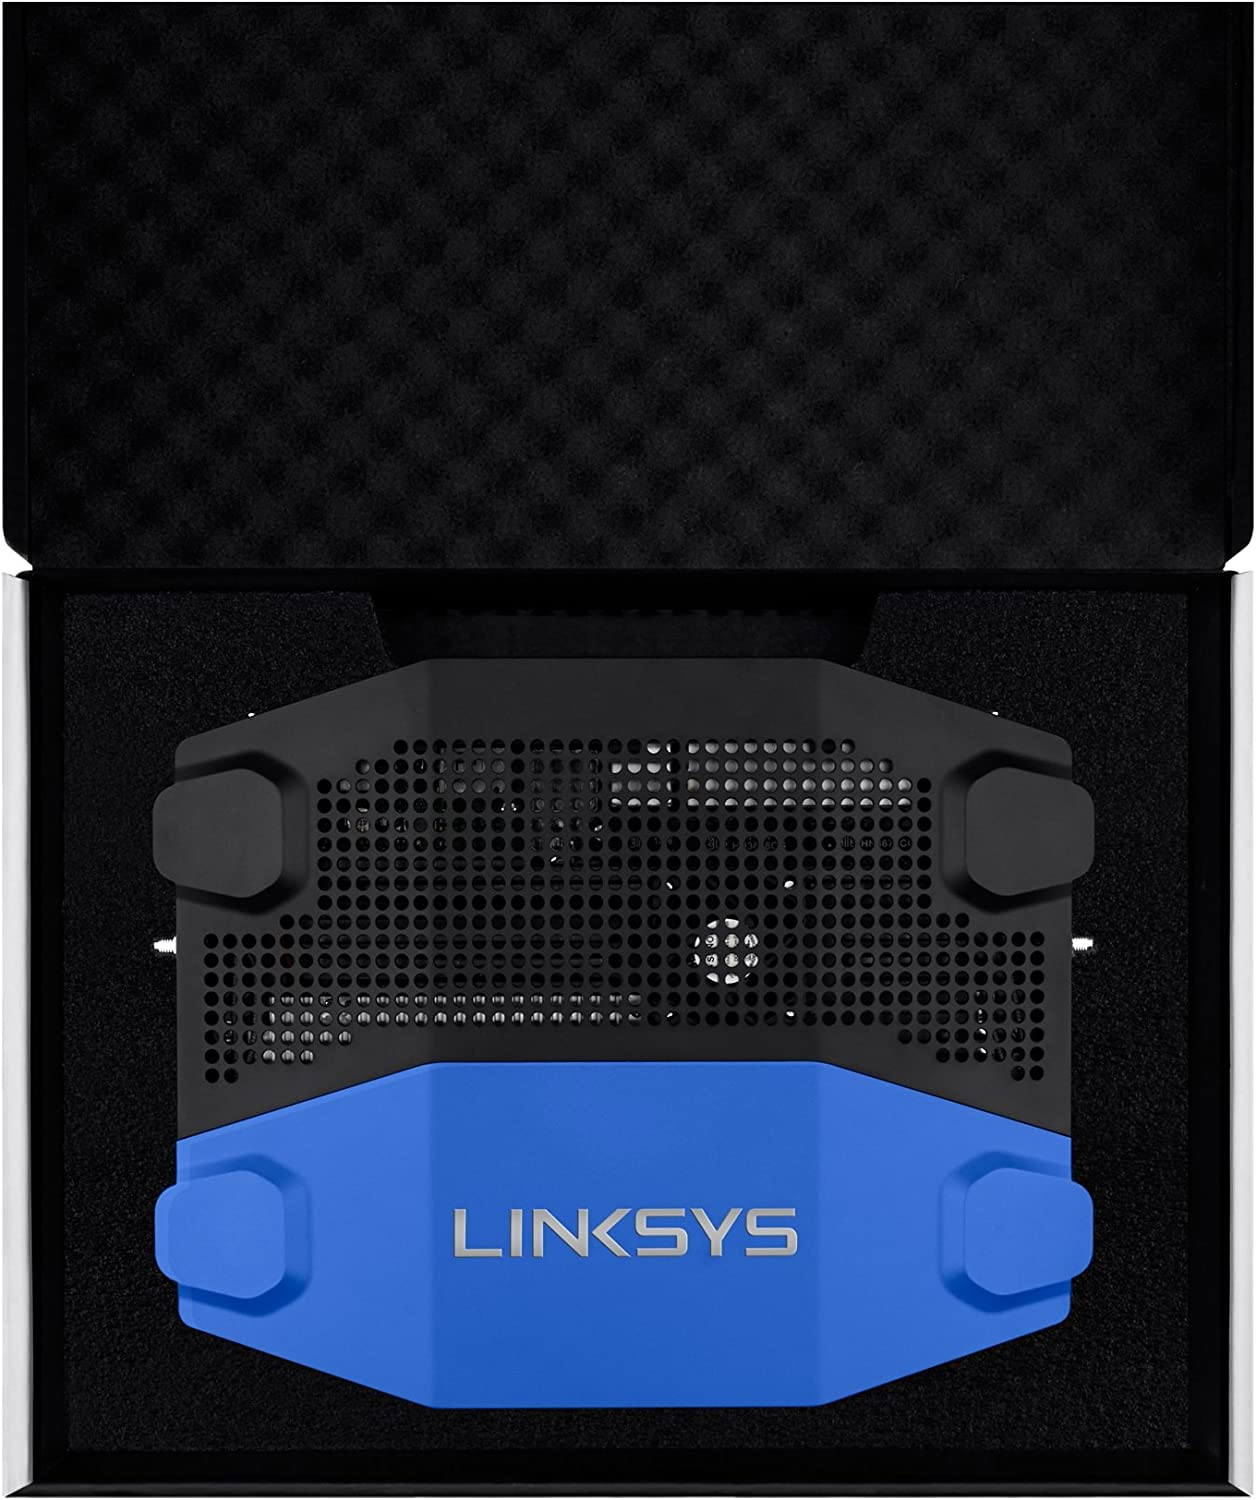 Linksys WRT1900AC Wireless AC Dual Band Router